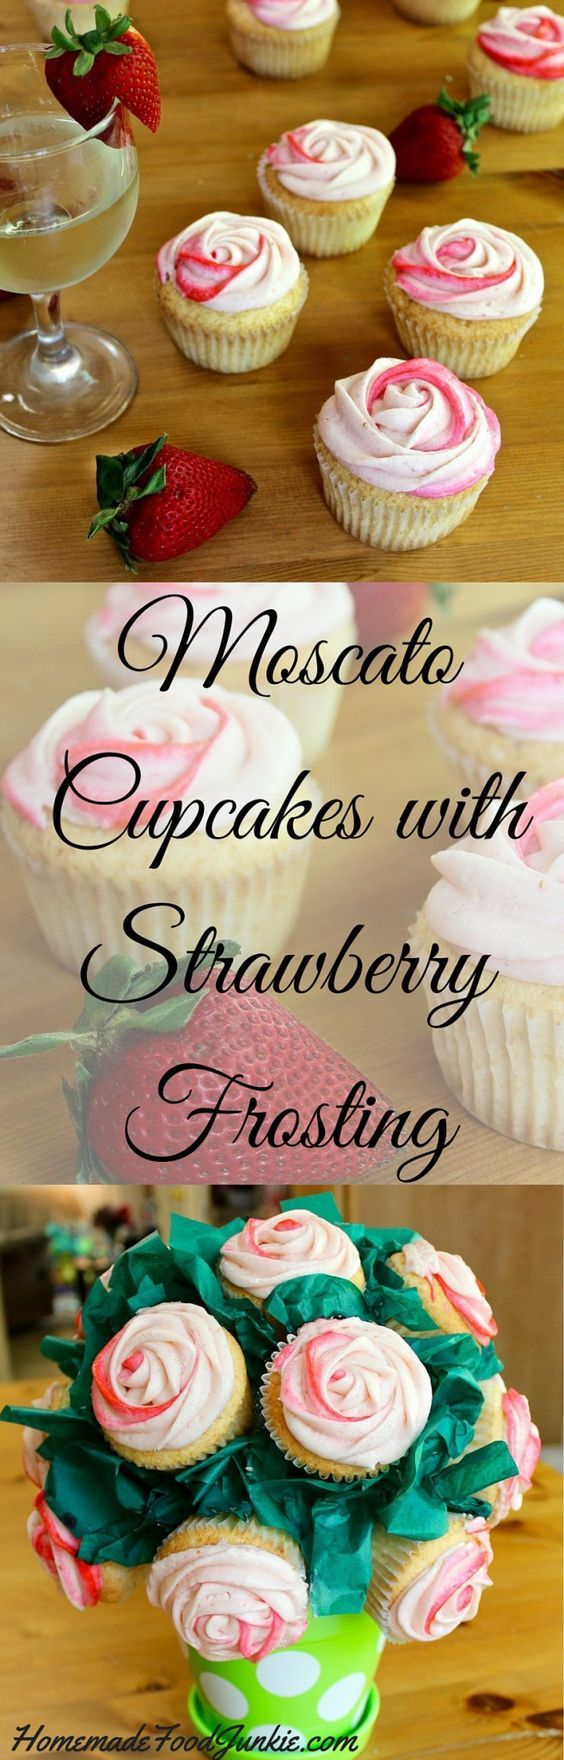 Moscato Cupcakes with Strawberry Frosting made from scratch with real strawberries. Light and fluffy and amazing flavor!! A perfect desserts recipe for a special event or party. HomemadeFoodJunki...